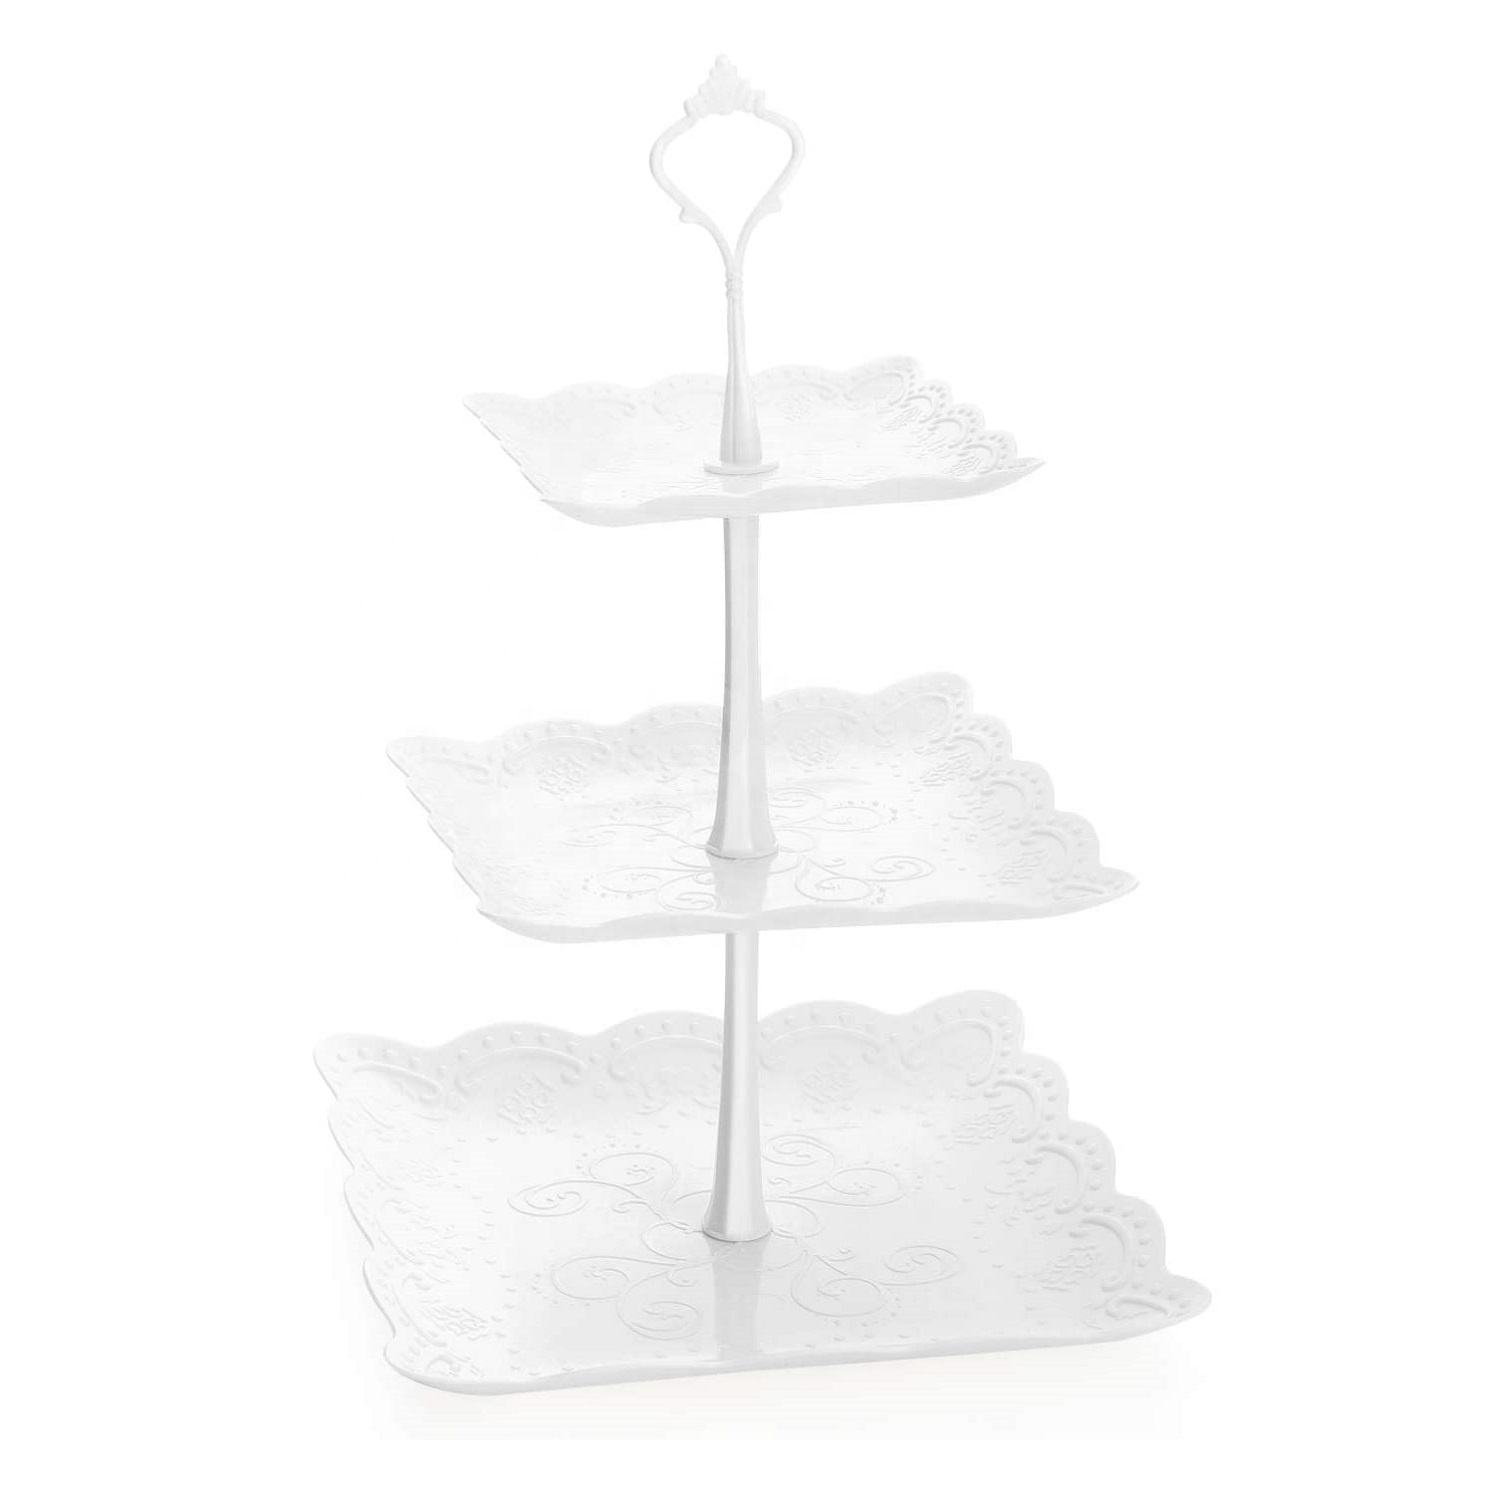 Plastic Tiered Cake Stand Dessert Cupcake Tower 3-Tier Cake Stand for Wedding Home Birthday